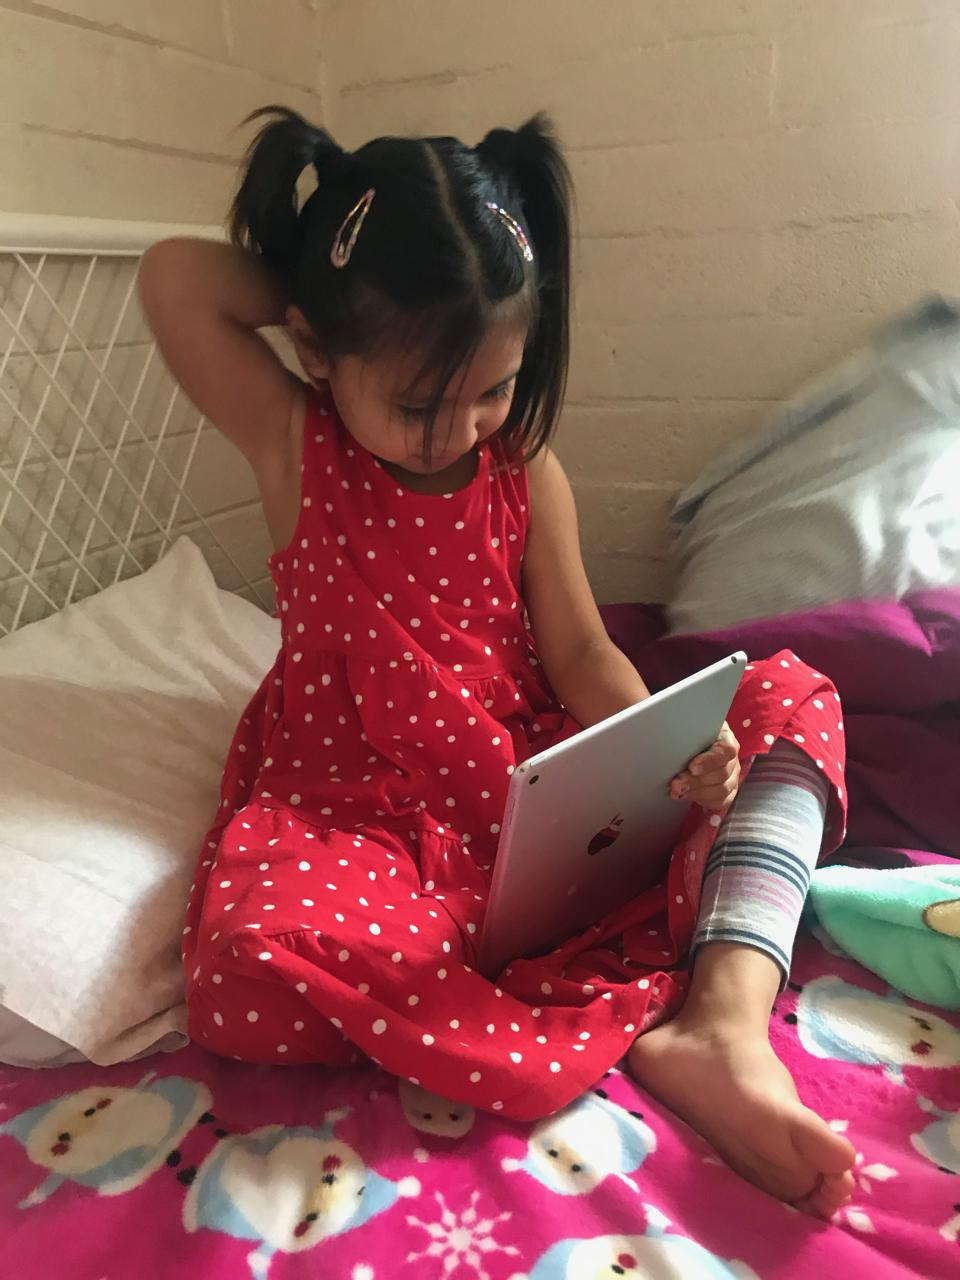 """Katy Kole de Peralta, """"5 yo old has first class via Zoom weeks after Tempe school closure,"""" A Journal of the Plague Year: an Archive of CoVid19. https://covid19.omeka.net/items/show/954."""